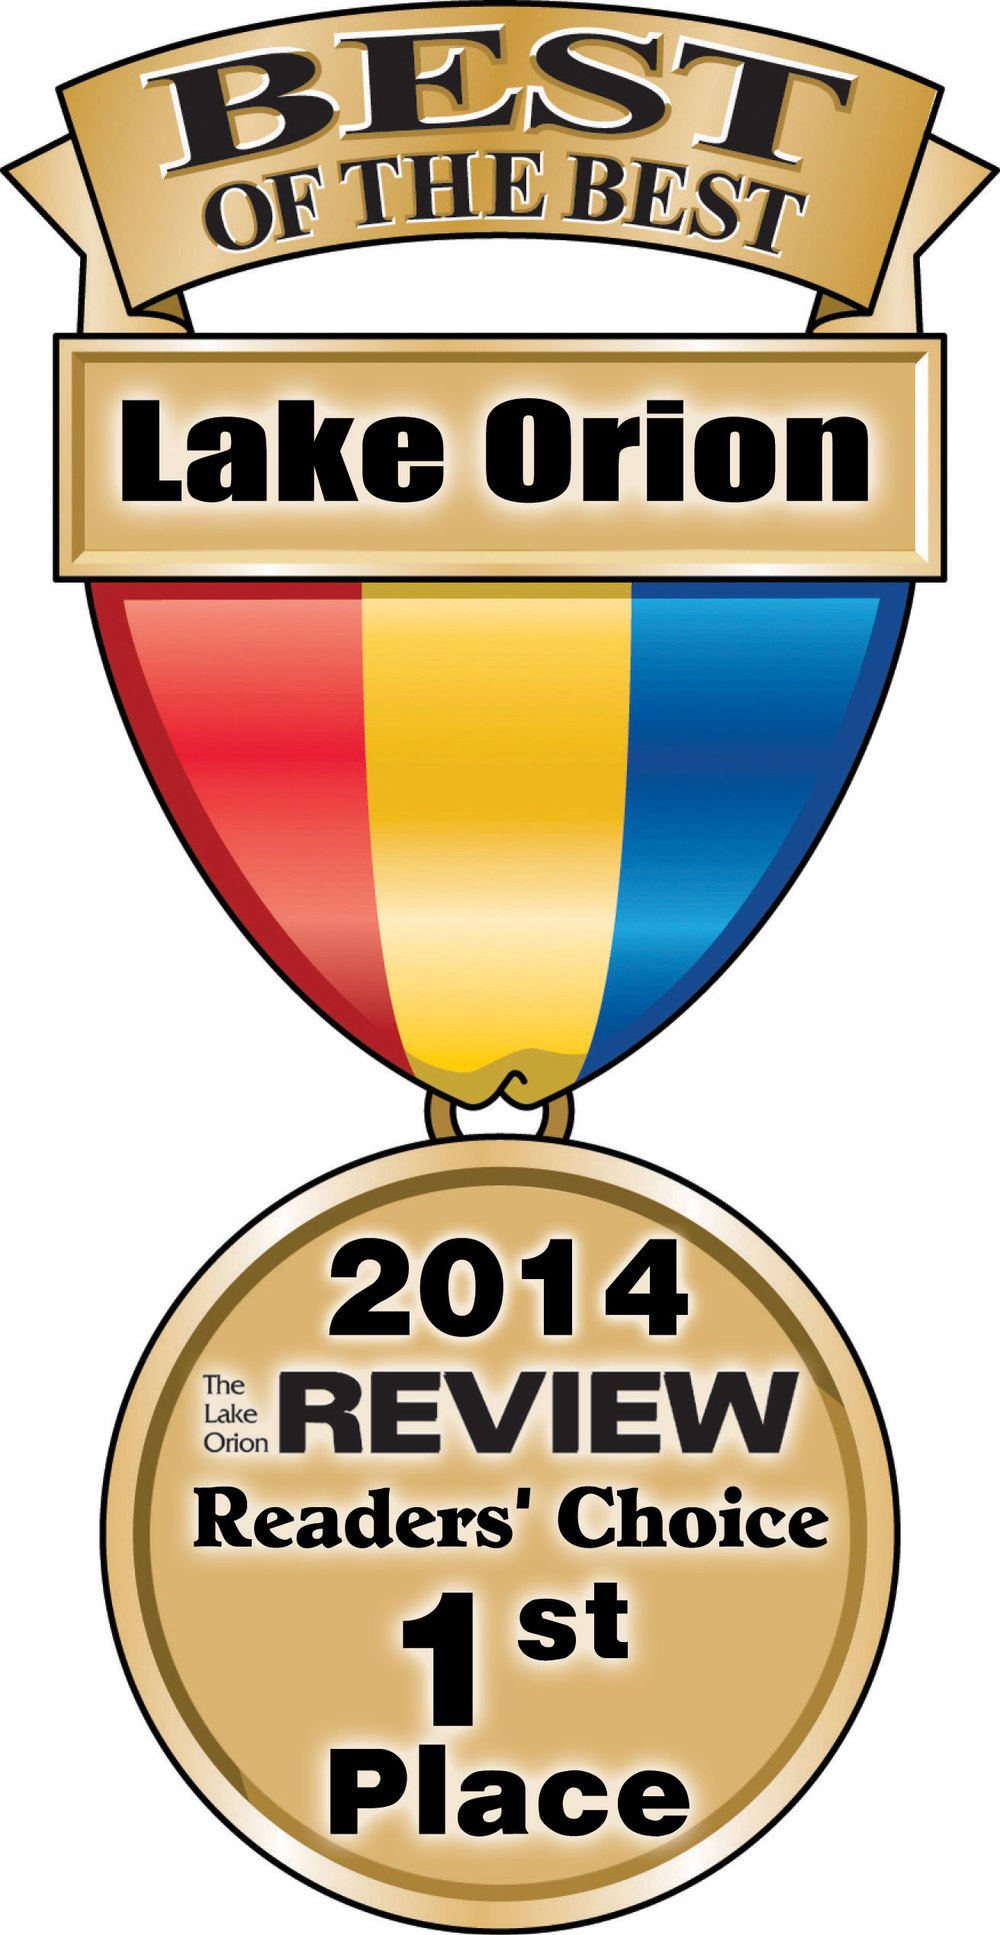 lake-orion-review-best-of-the-best-2014